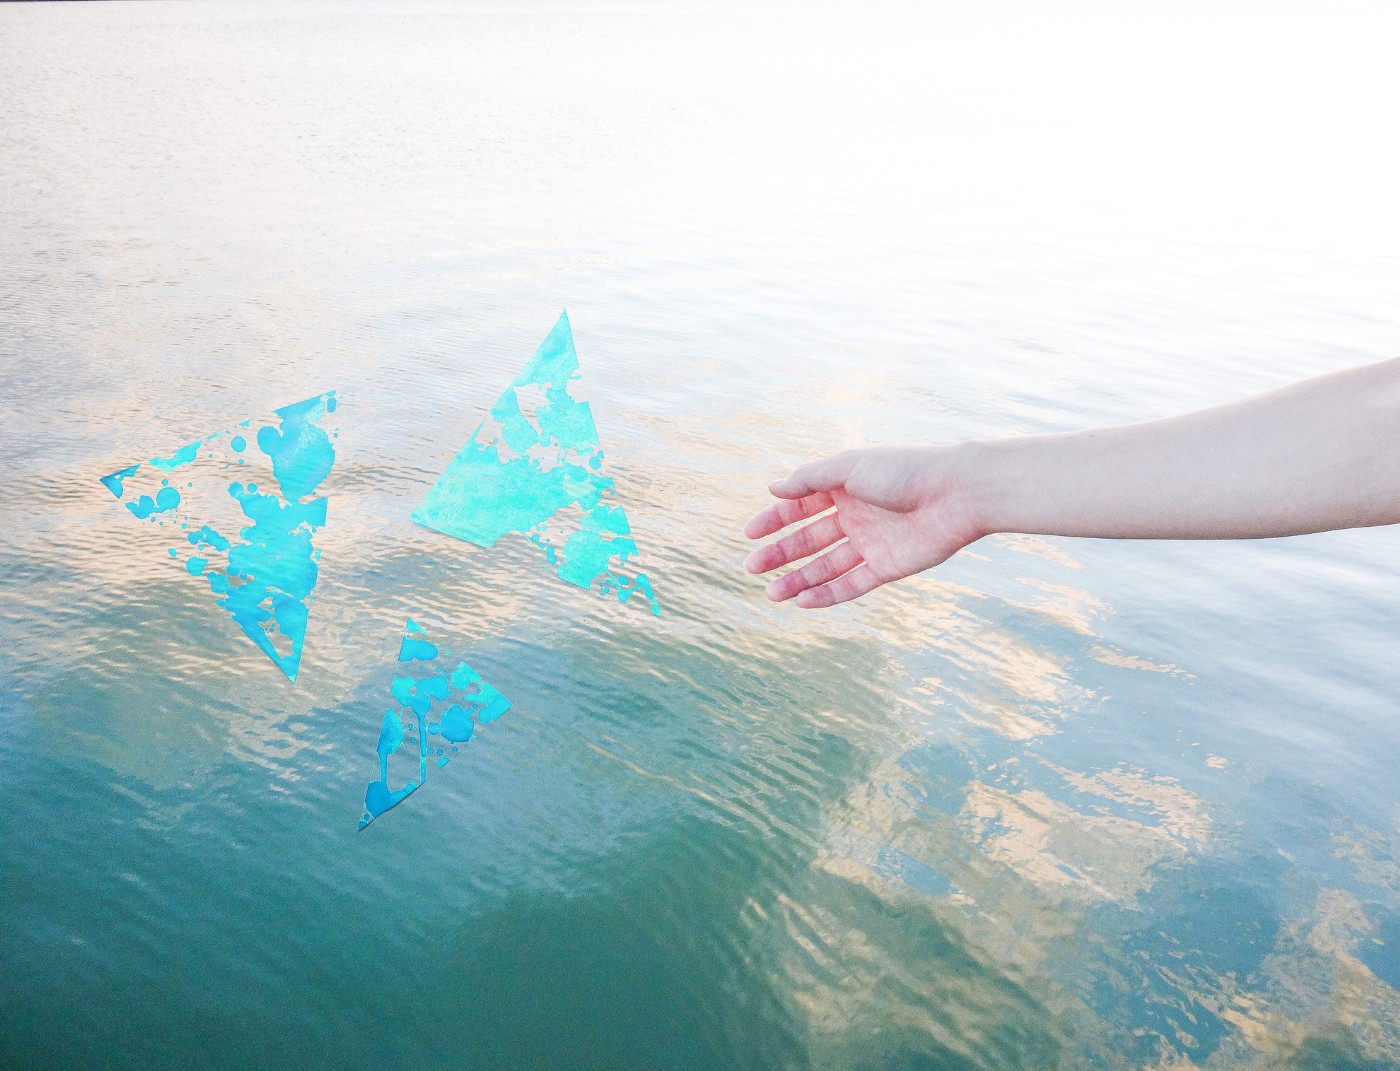 A photo of a hand extending to water with three abstract triangles.